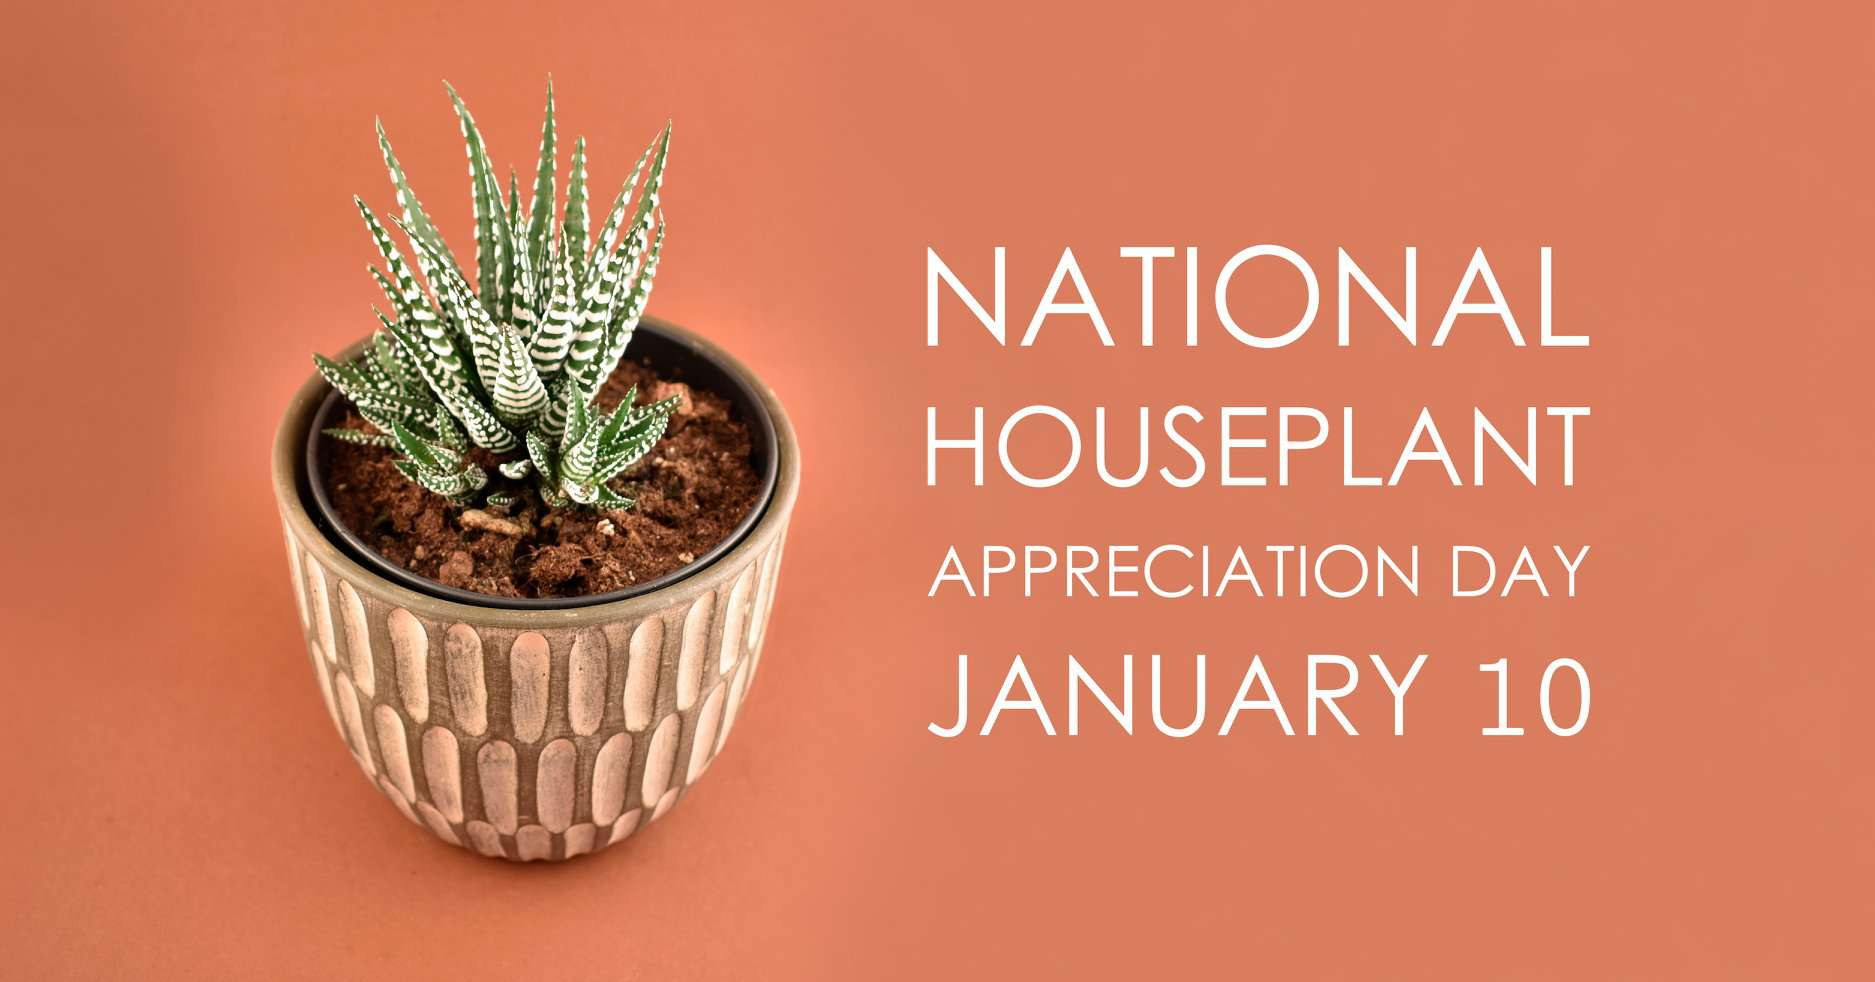 National Houseplant Appreciation Day Wishes Awesome Picture